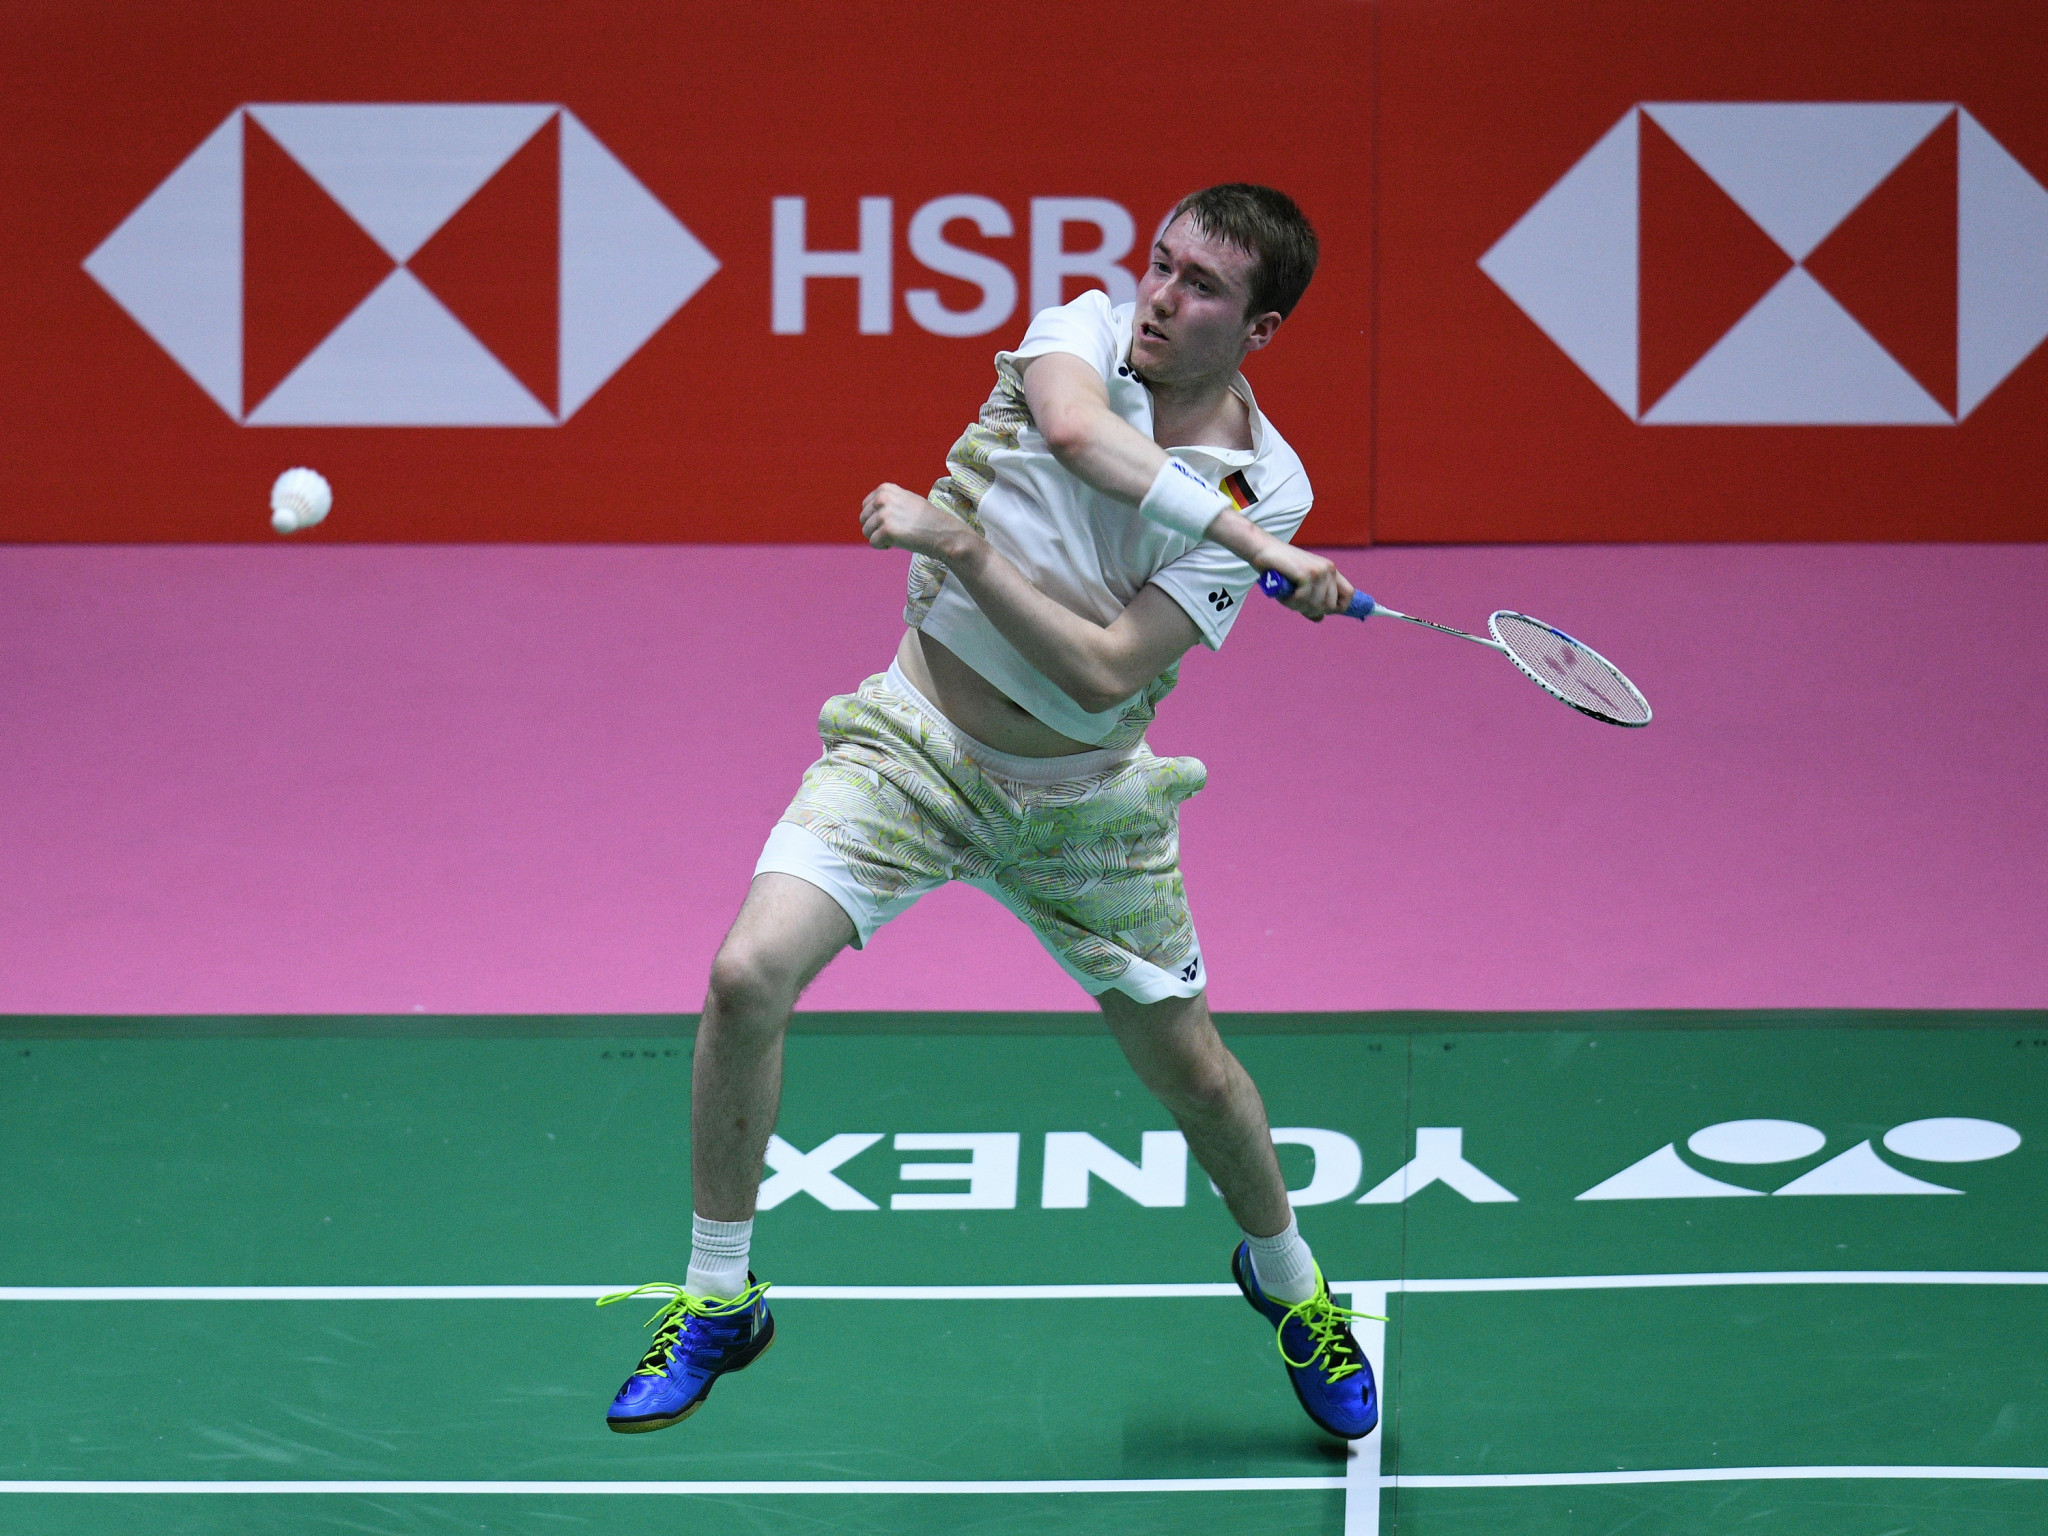 Top seed Lars Schaenzler is up and running in his quest to claim the men's singles title at the FISU World Badminton Championships in Kuala Lumpur ©Getty Images